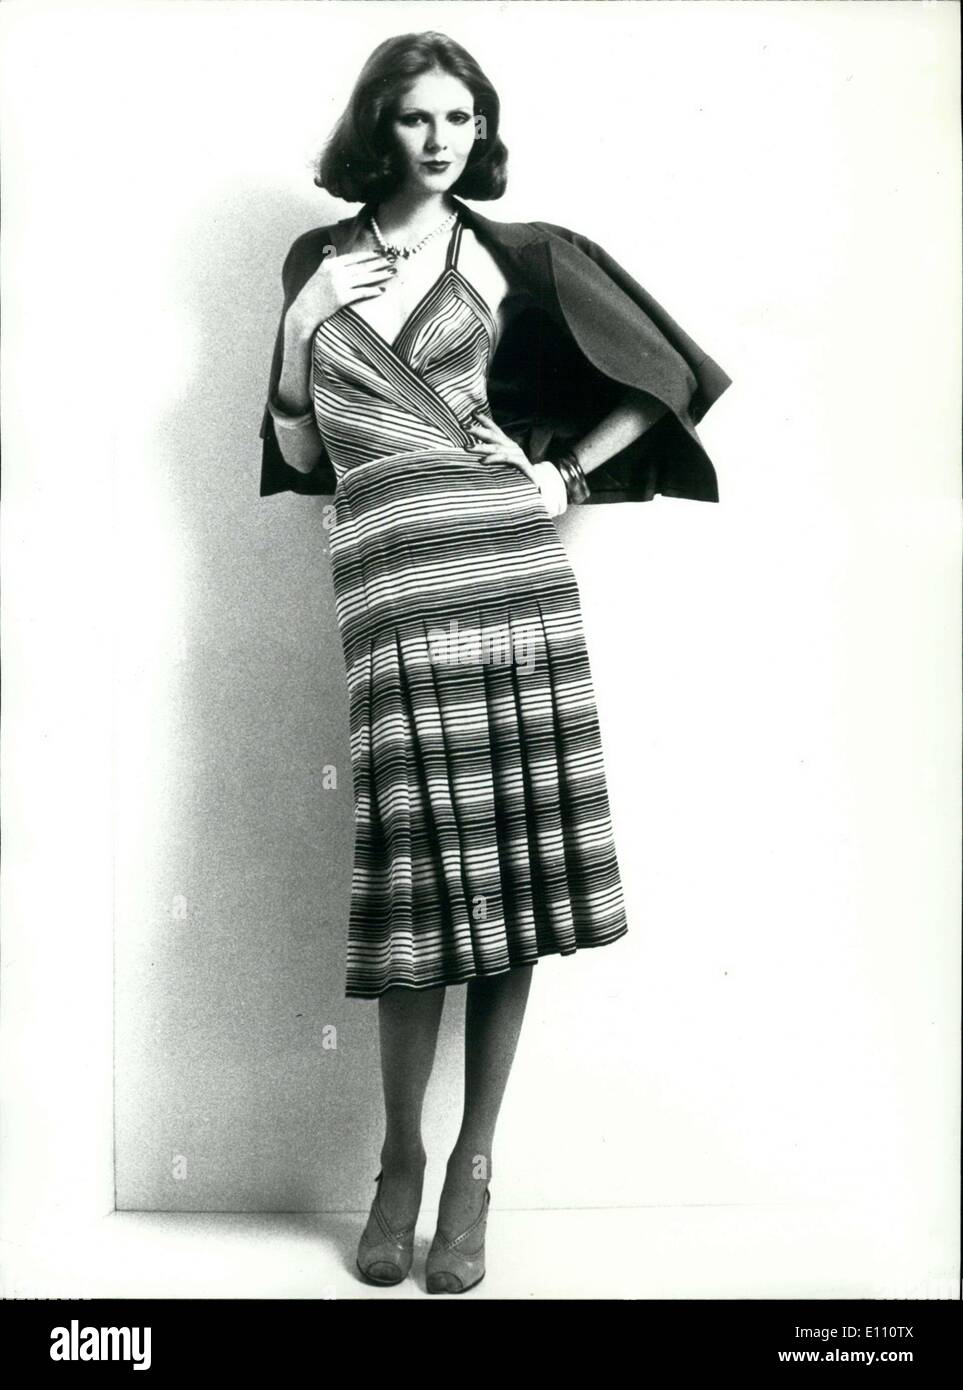 Nov. 20, 1974 - Black, white, and gray striped silk dress with a vest in grey toile. - Stock Image